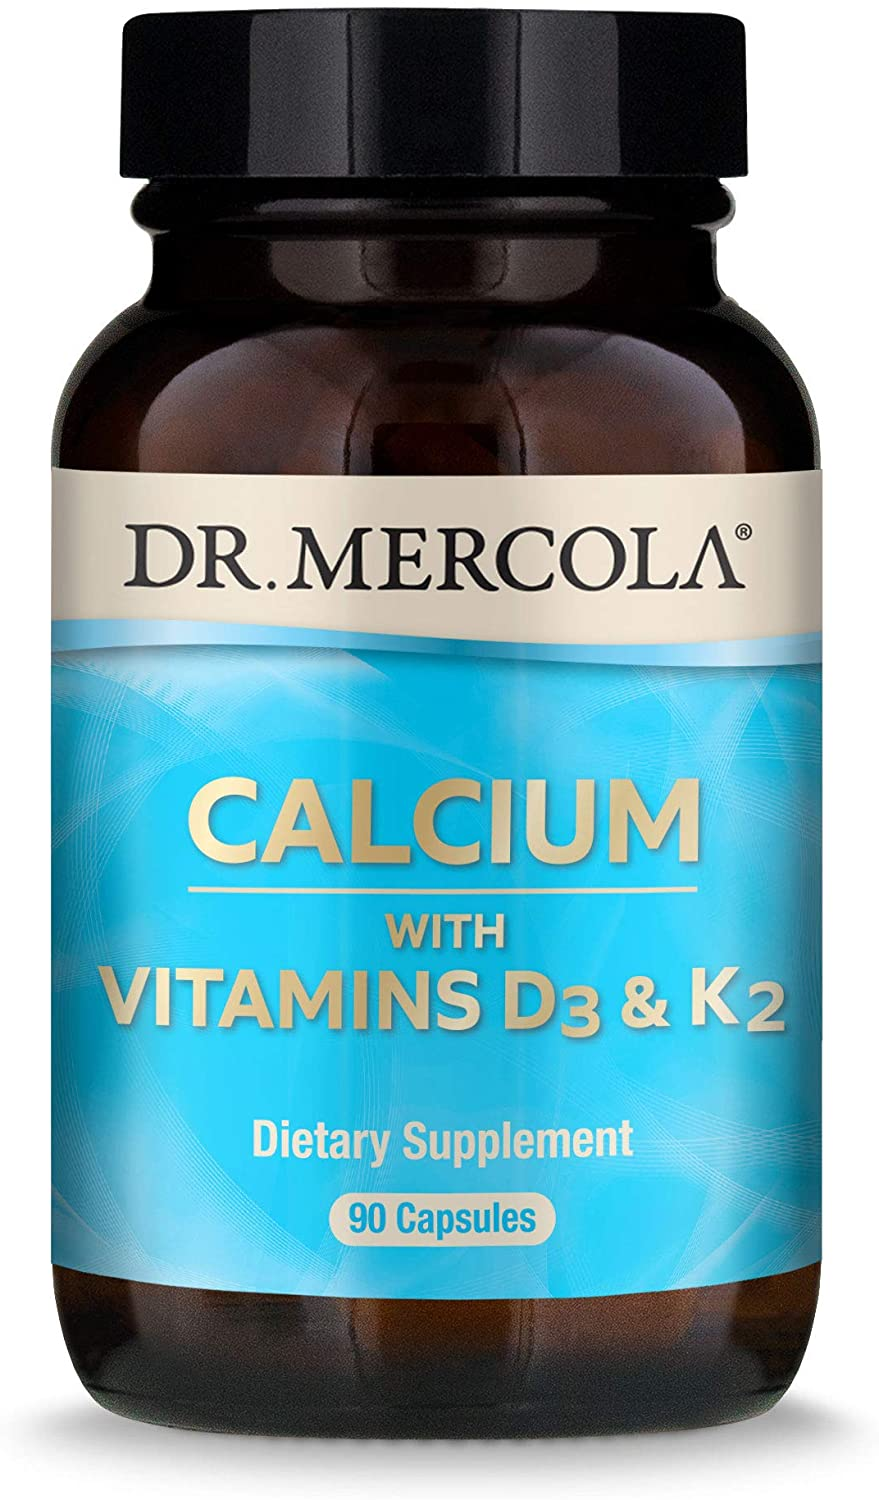 Dr. Mercola Calcium with Vitamins D3 & K2 Dietary Supplement, 90 Servings (90 Capsules), Supports Bone Health, Supports Cardiovascular Health, Non GMO, Soy Free, Gluten Free